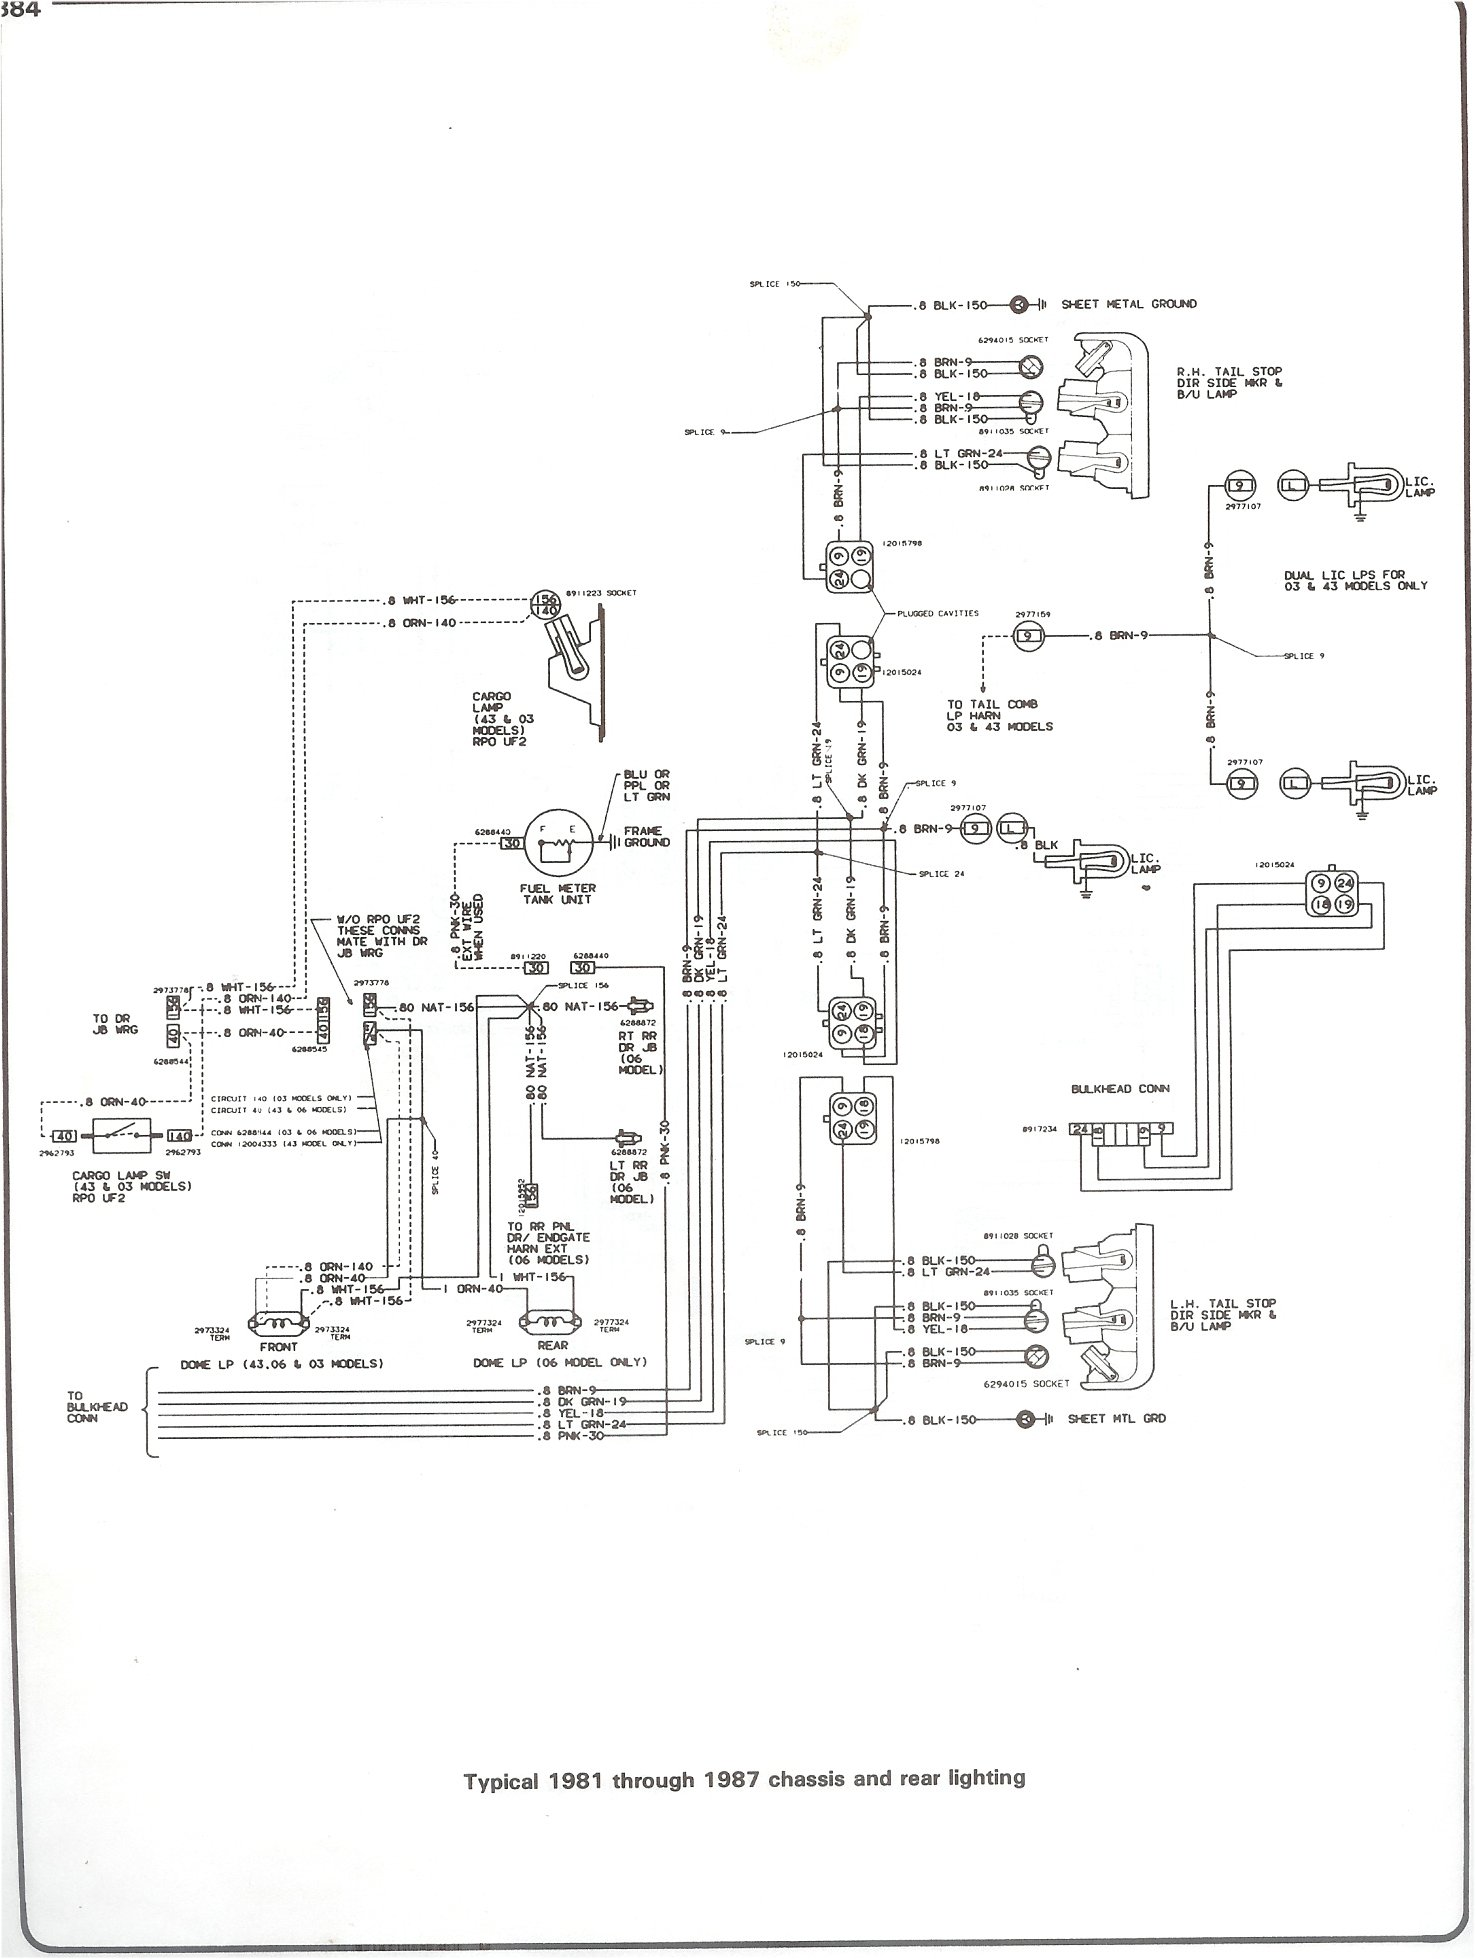 hight resolution of complete 73 87 wiring diagrams 85 monte carlo ss wiring diagram 81 87 chassis and rear